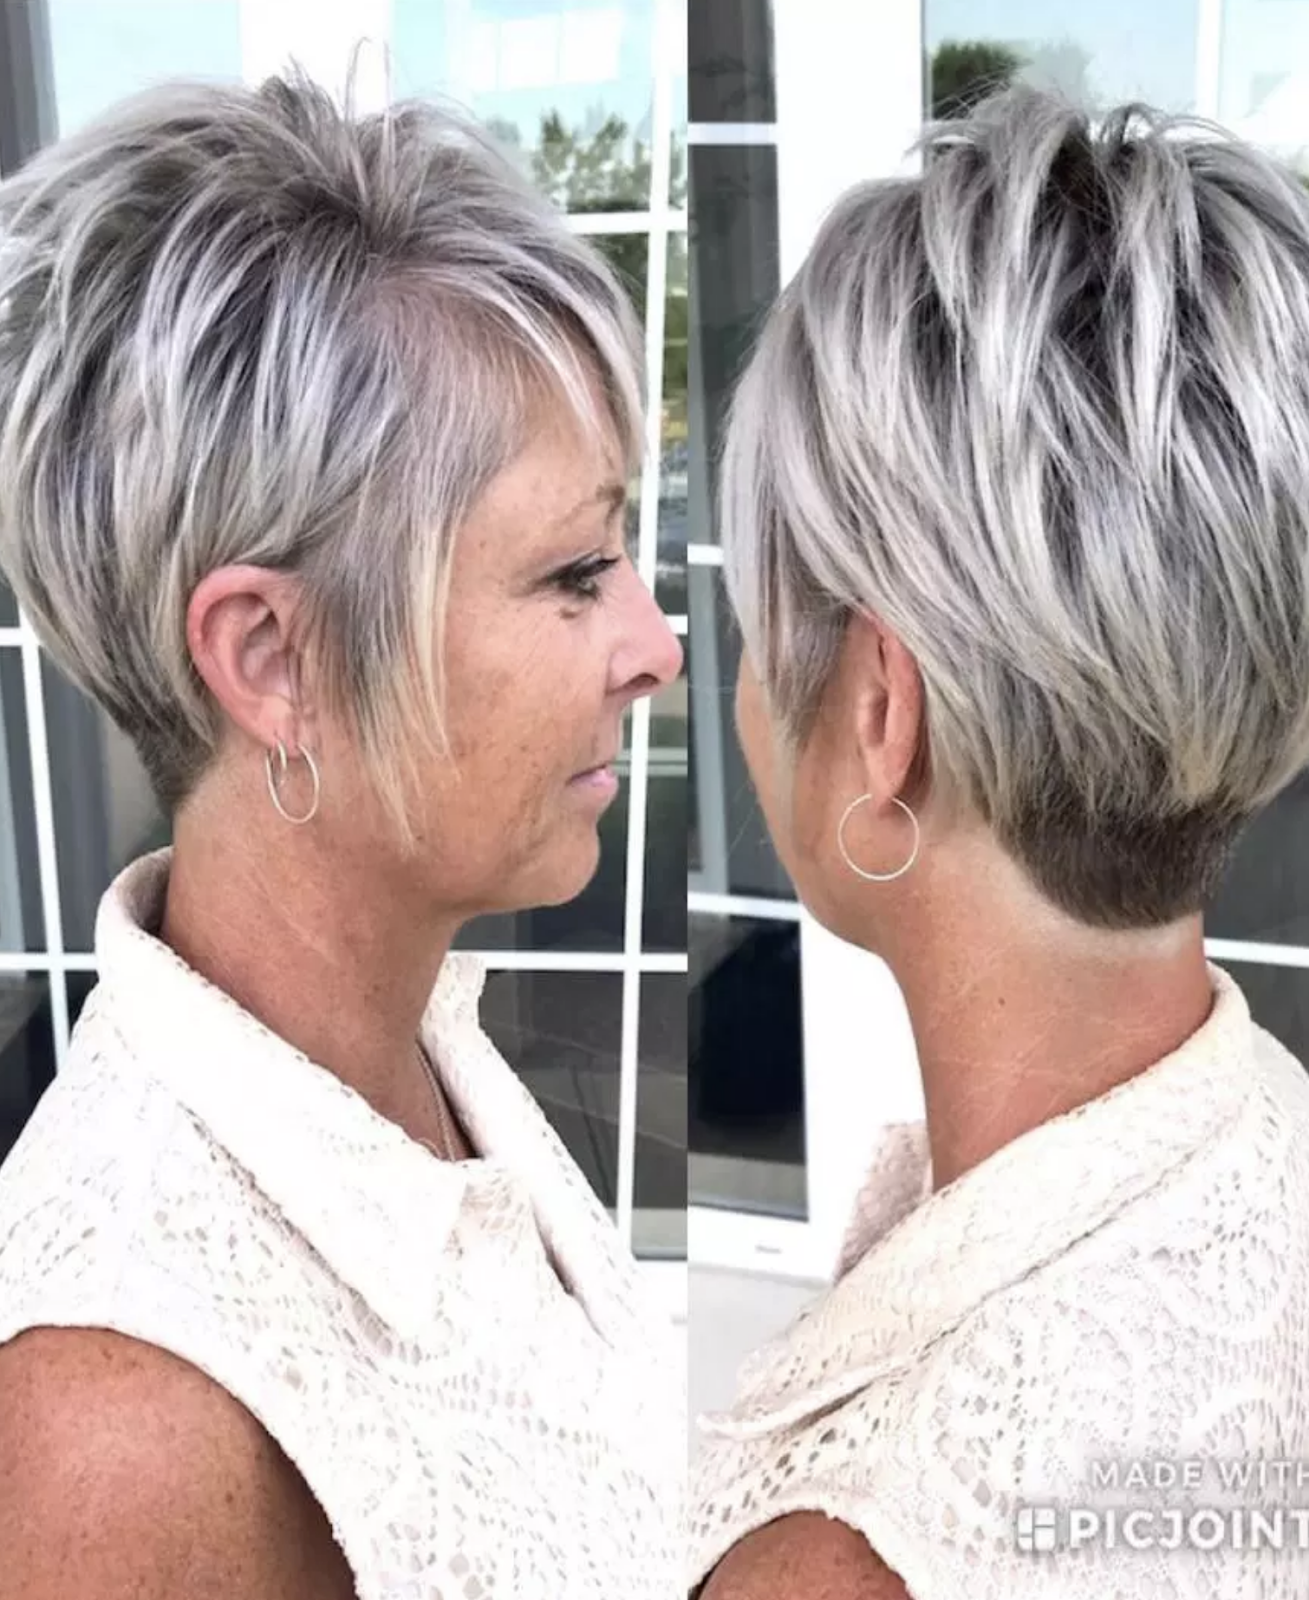 short hairstyles for women over 40 - latesthairstylepedia